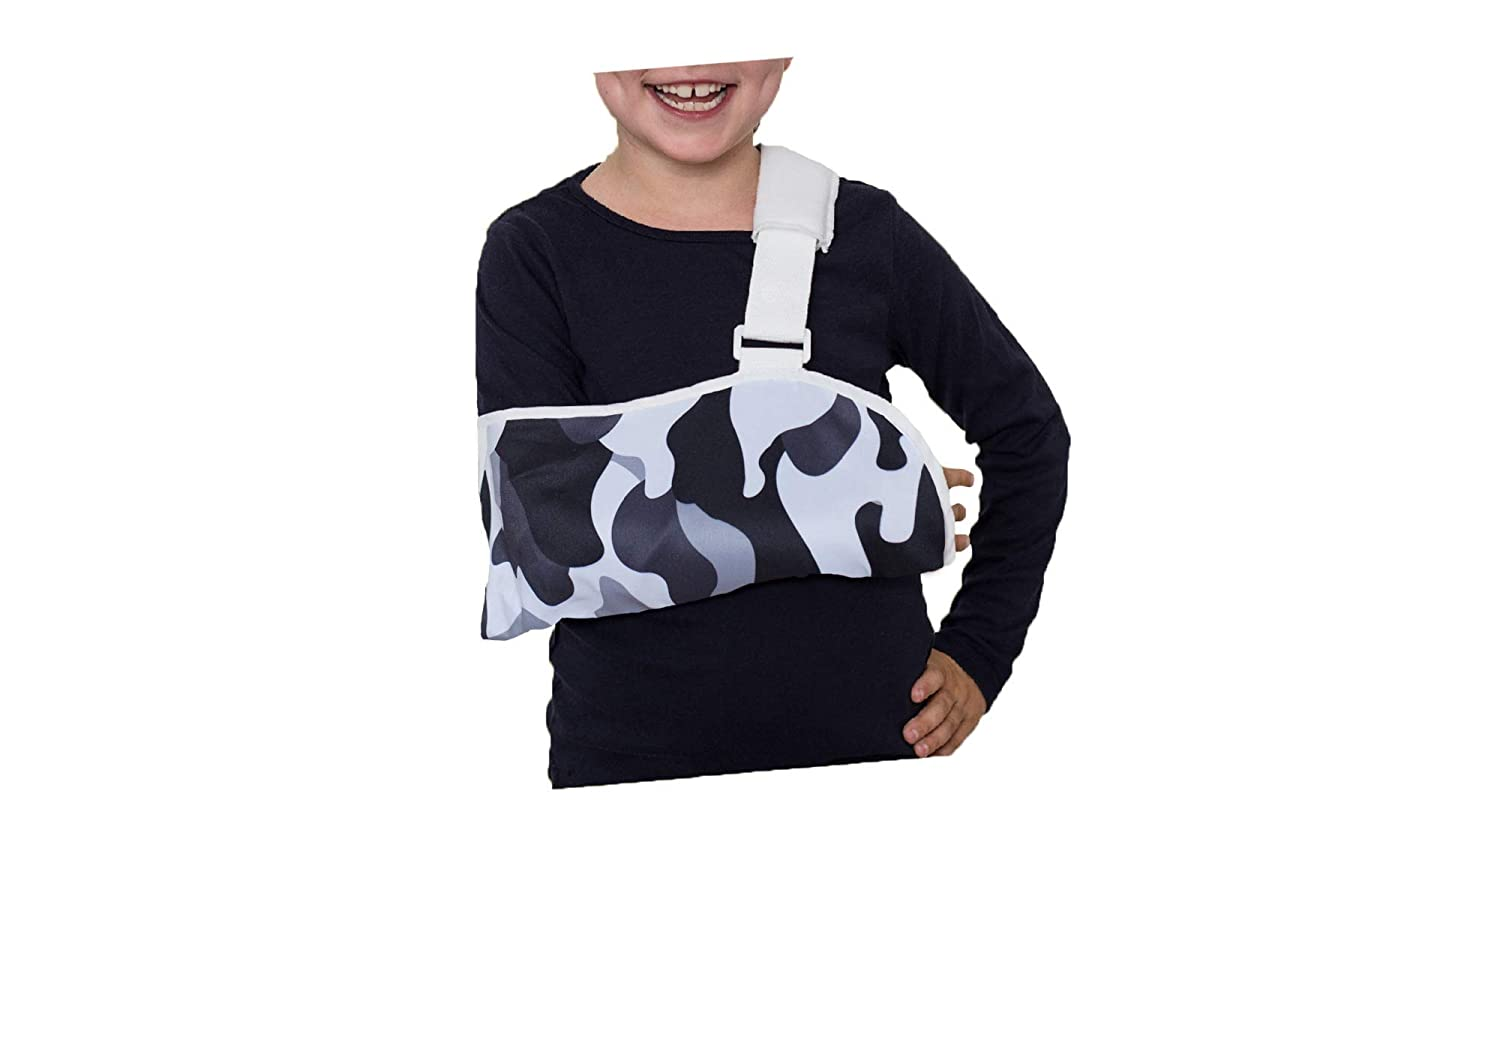 Crazy Casts Children's Arm Sling & Crazy Casts Waterproof Cast and Bandage Protector